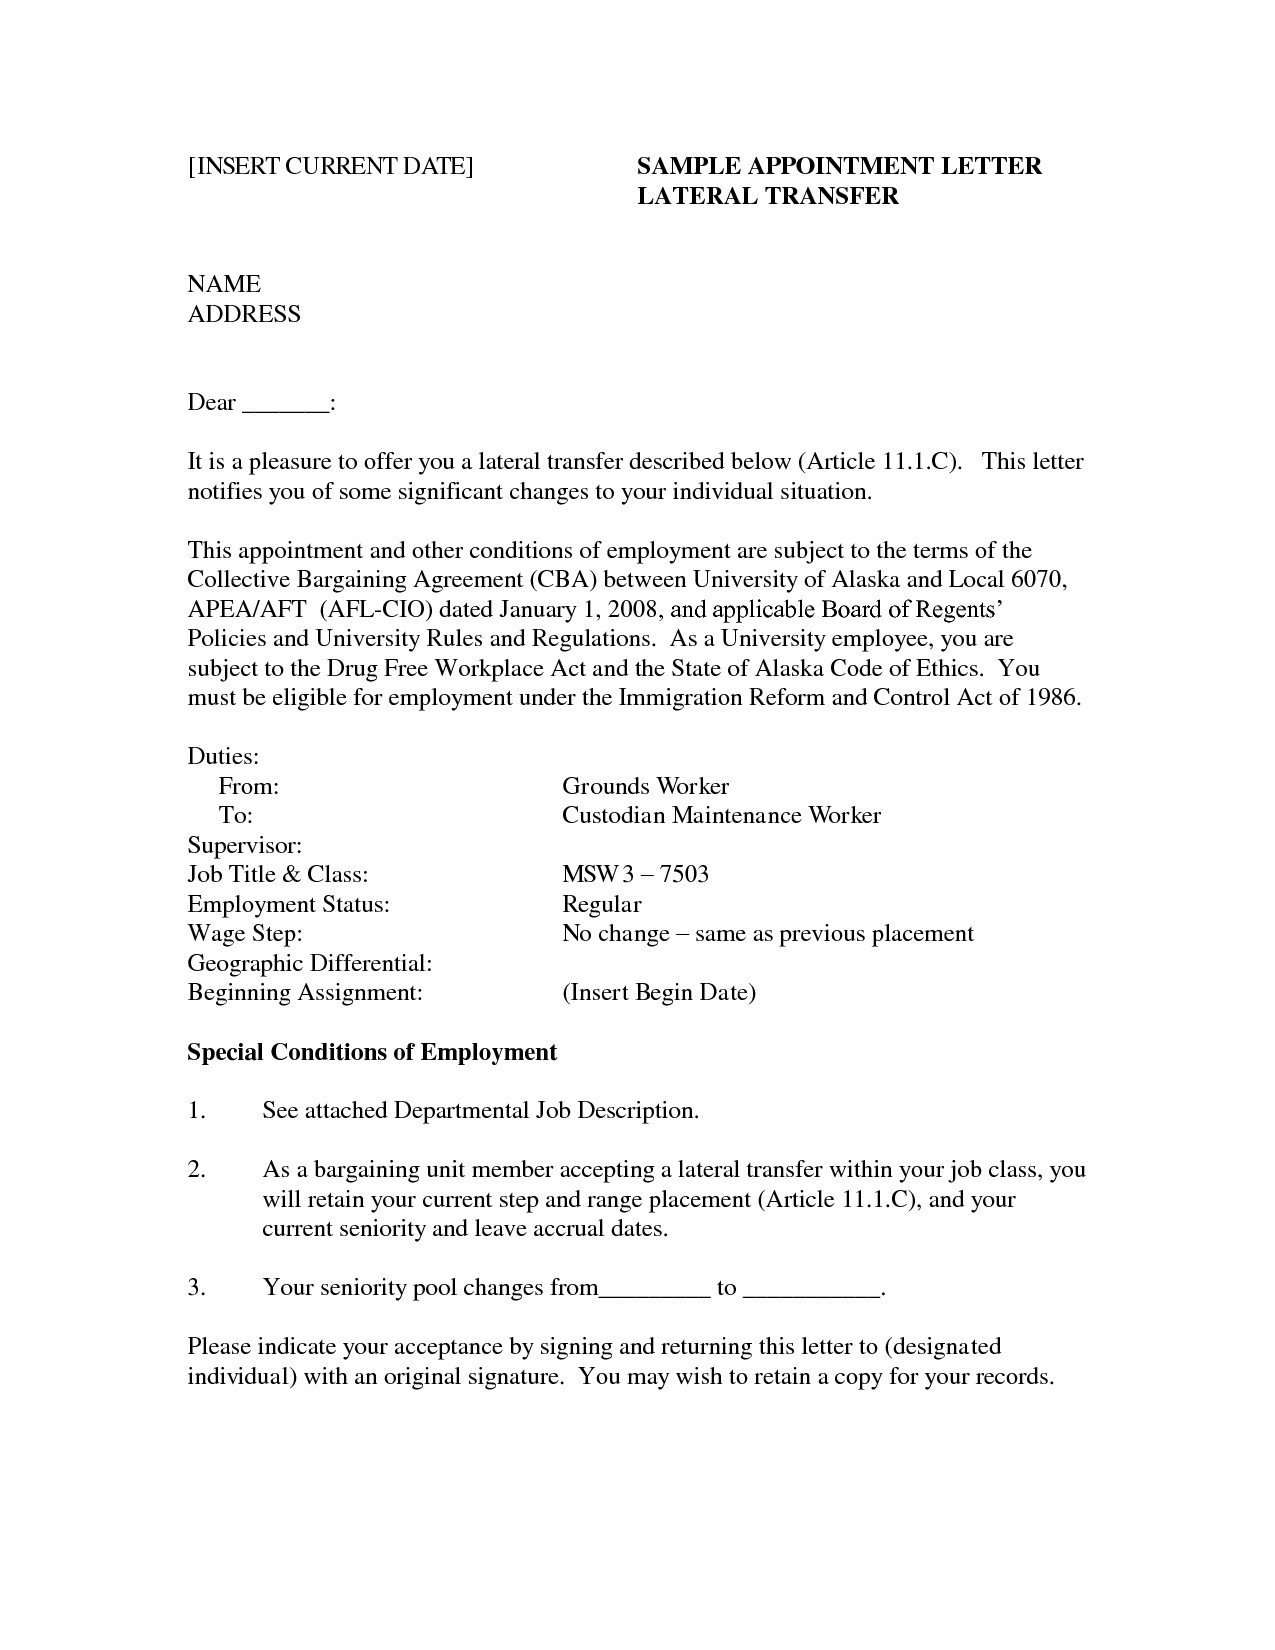 Letter envelope address template examples letter templates for Mailing a resume and cover letter